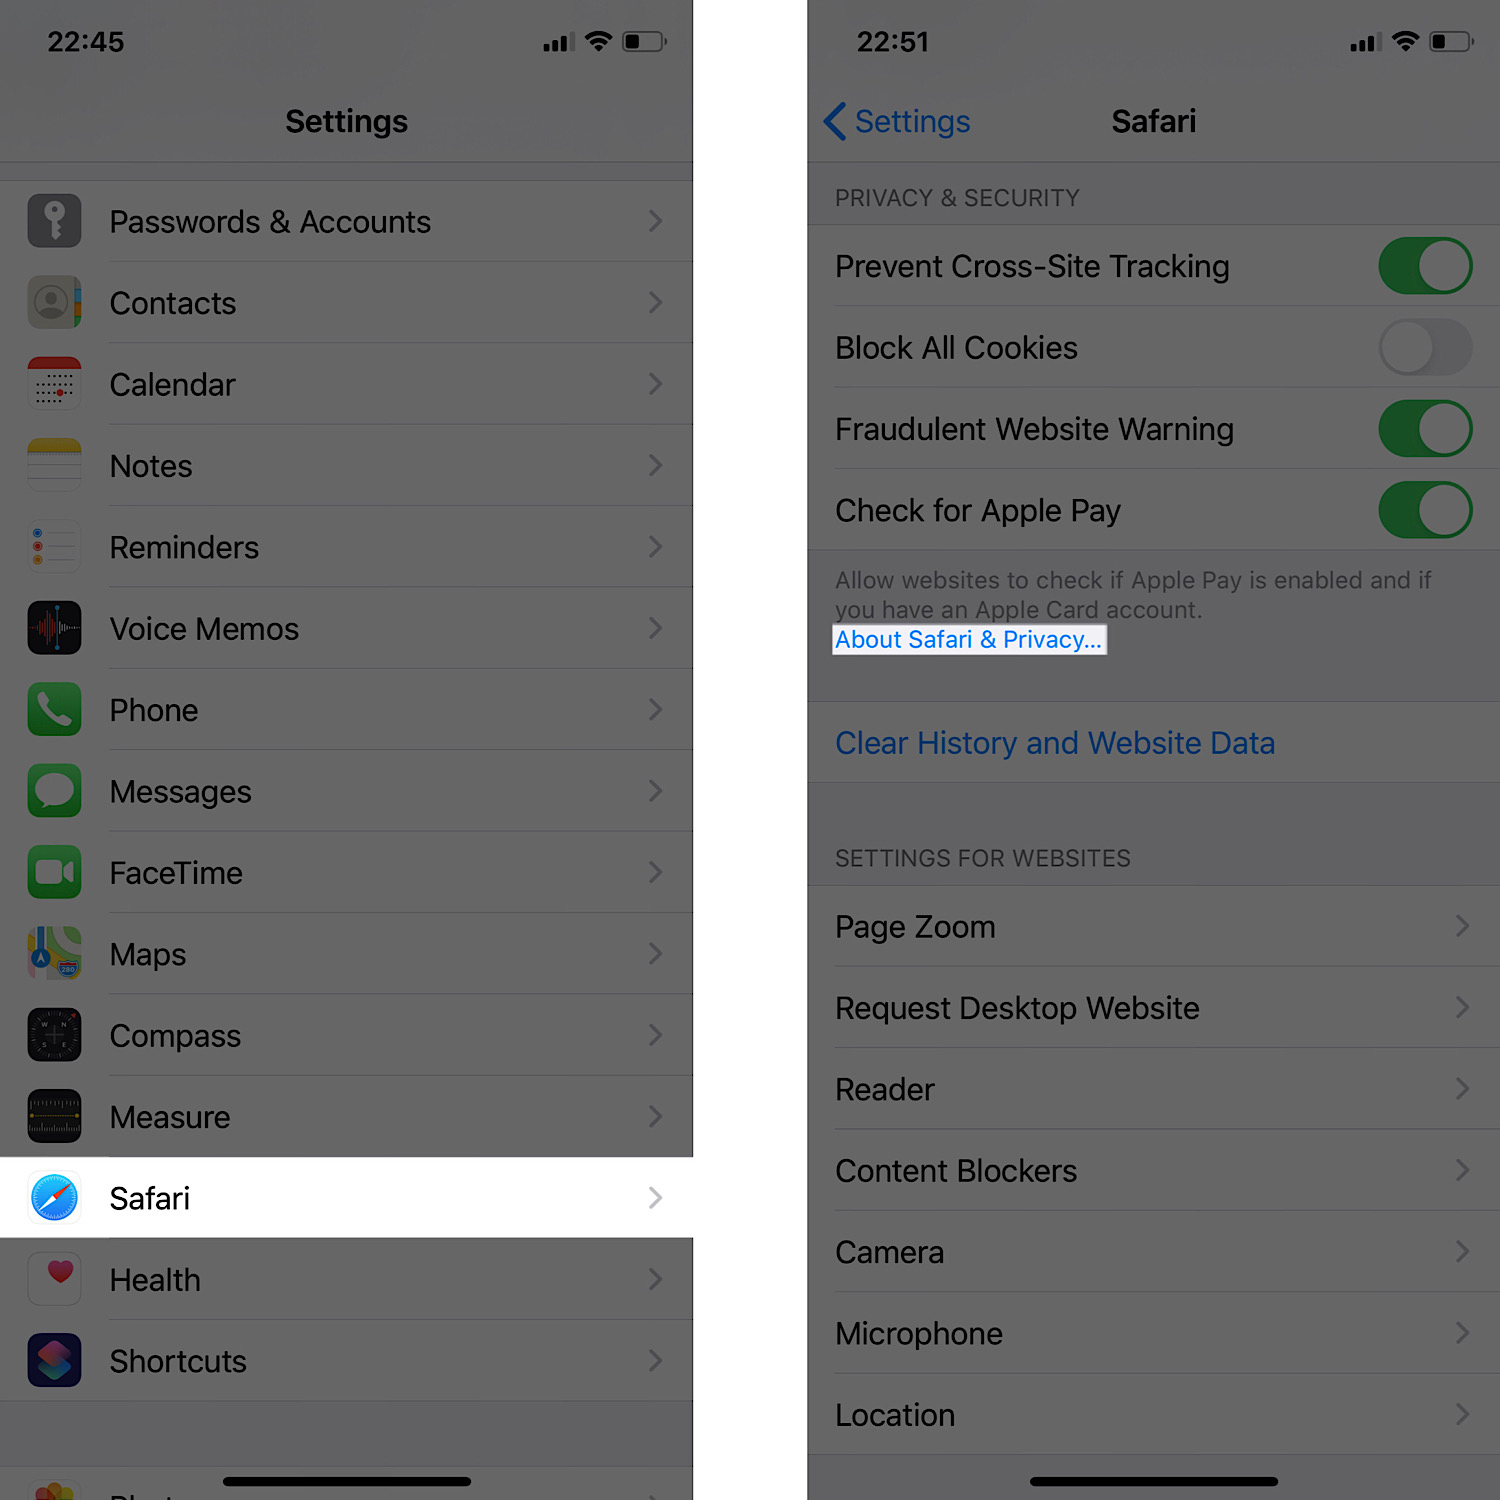 How to navigate to Apple's Safari & Privacy documentation in the iOS settings app.